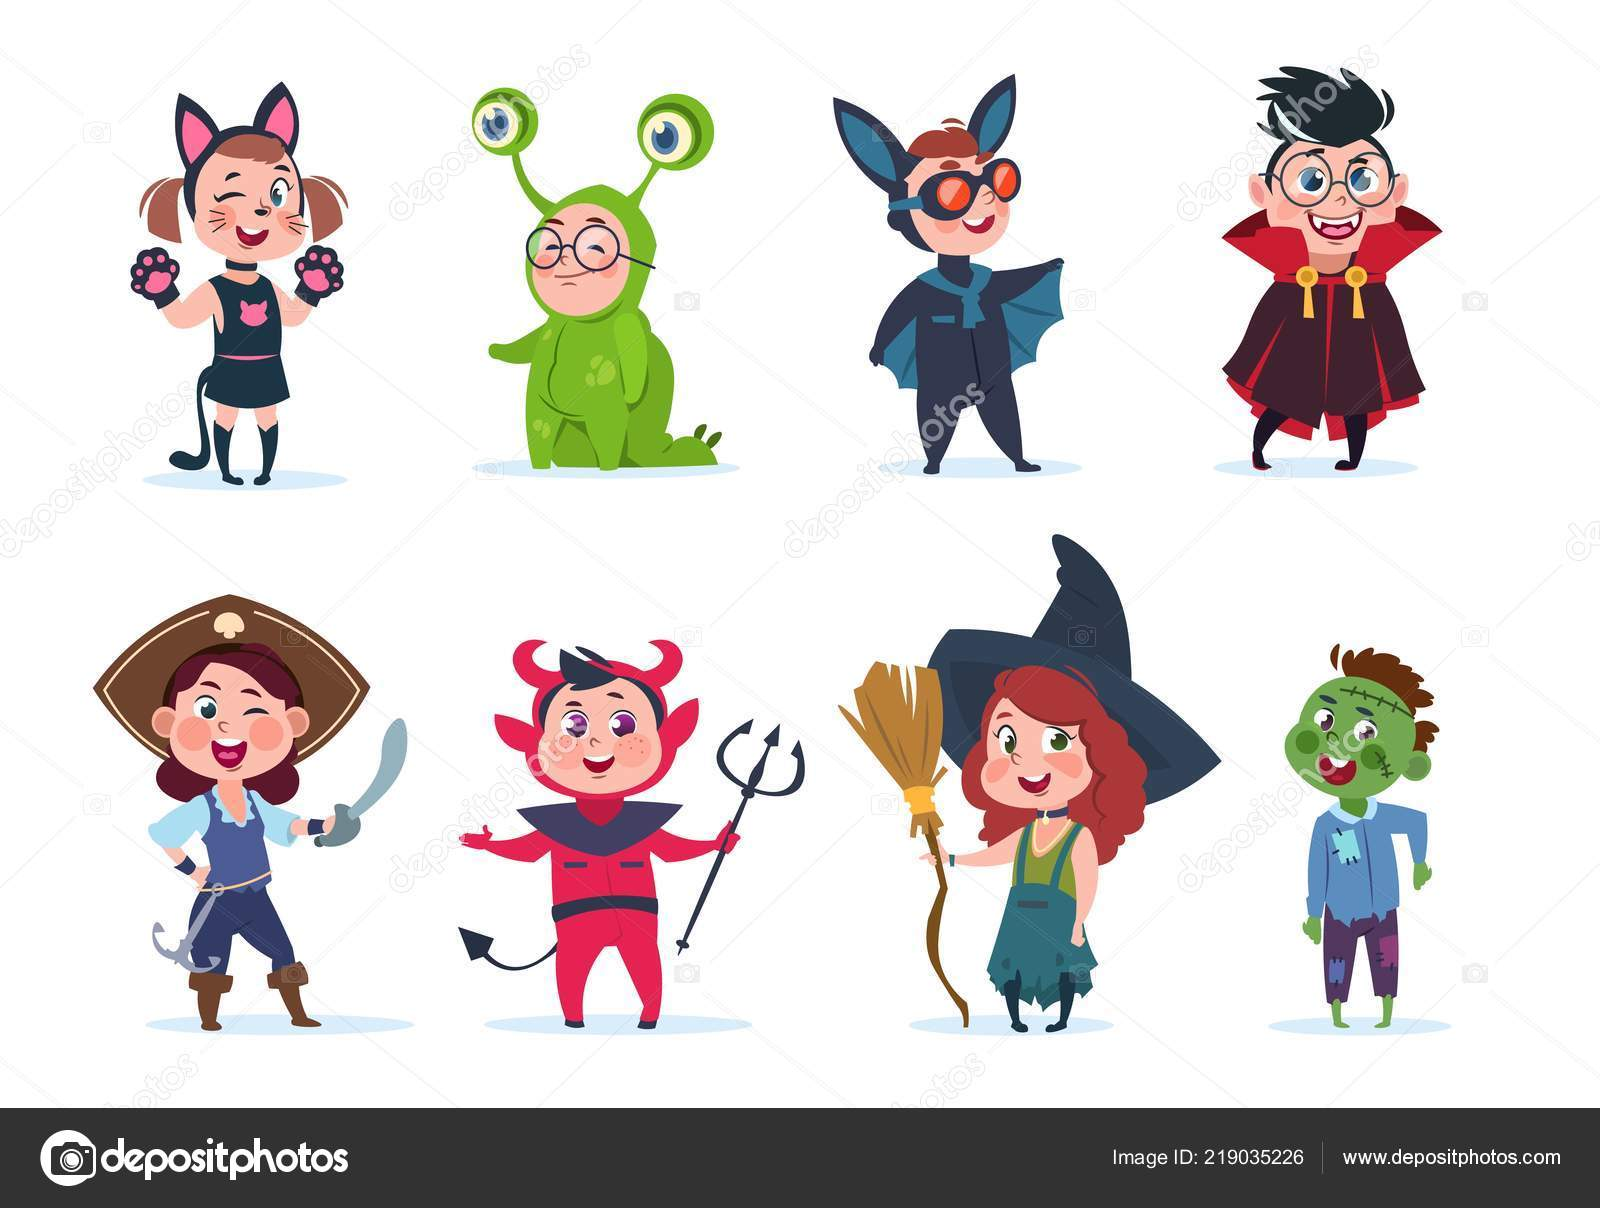 Pictures Halloween Cartoon Characters Costumes Kids Halloween Costumes Cartoon Cute Baby At Halloween Party Festival Cartoon Vector Characters Stock Vector C Microone 219035226